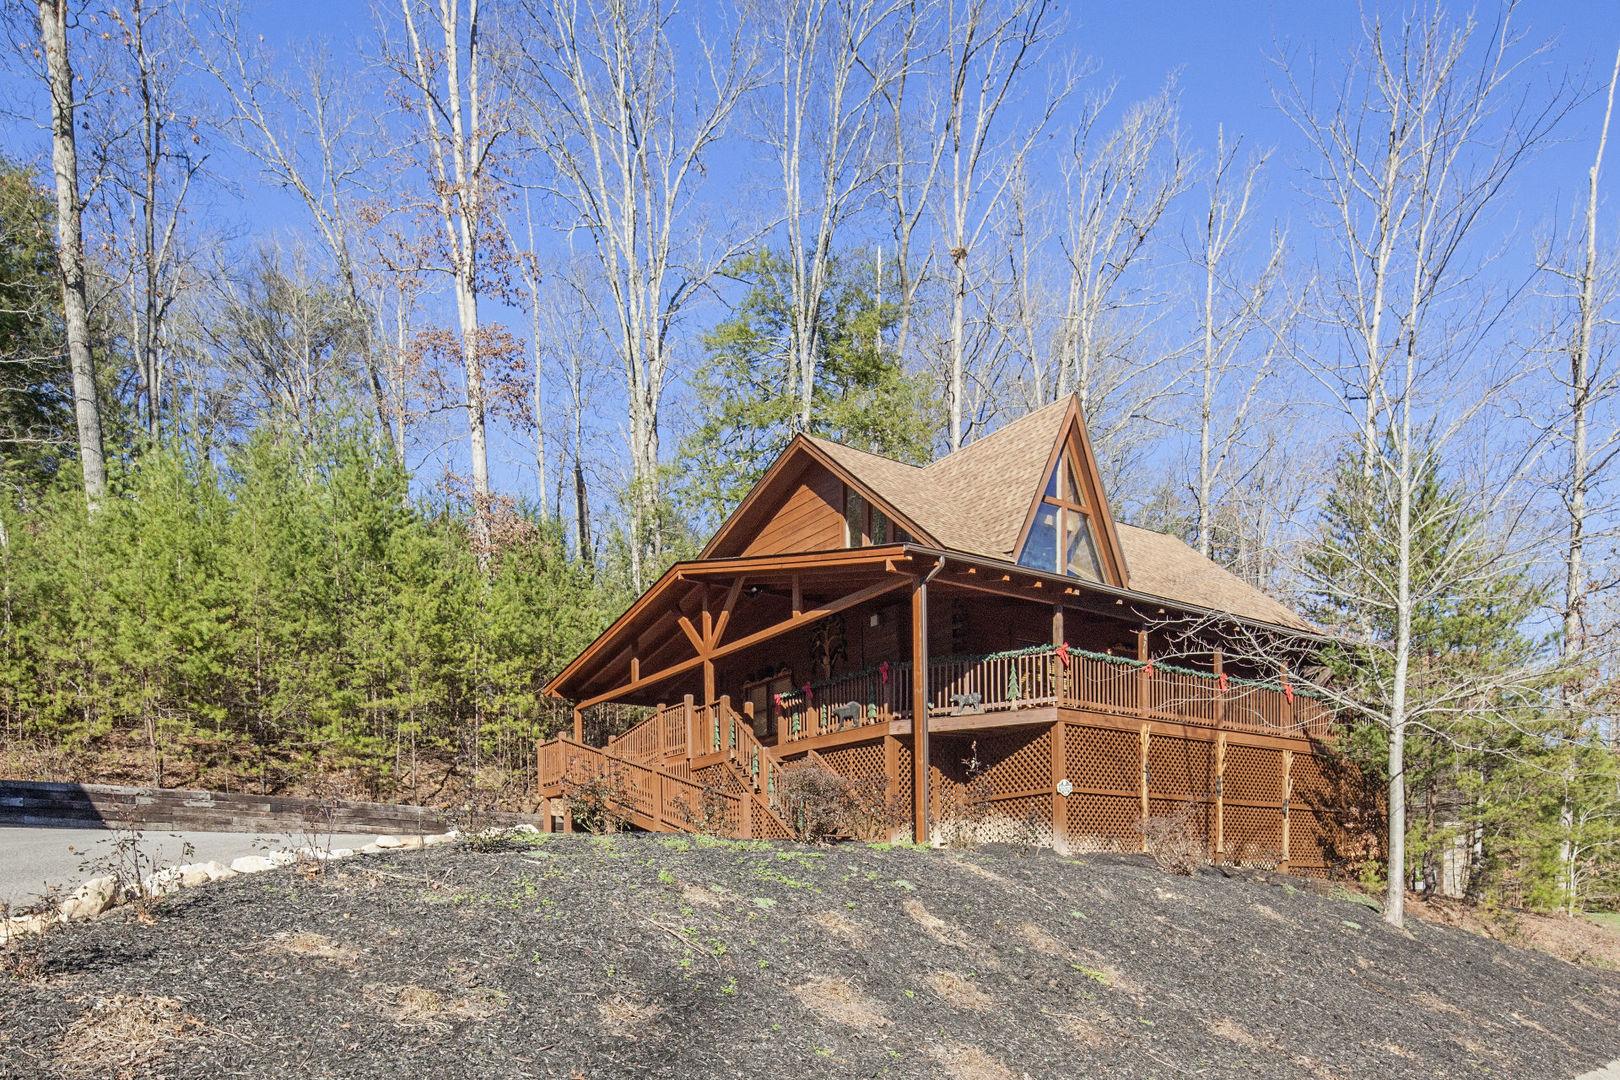 Pigeon Forge Cabins - Soaring Eagles - 4 Bedroom